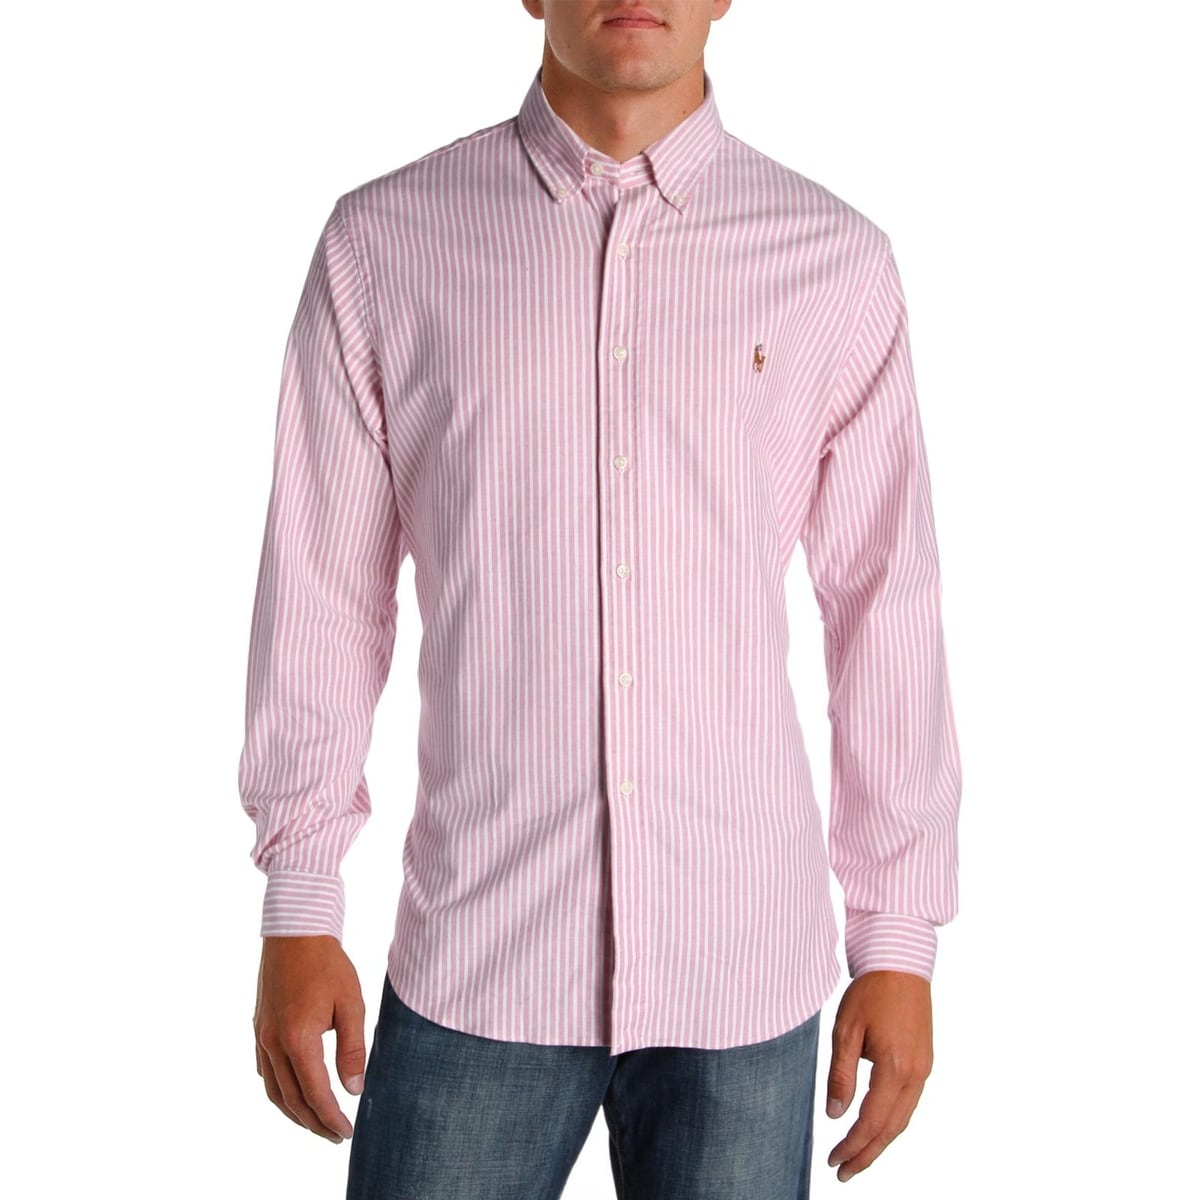 c137ef922fa Ralph Lauren Slim Fit Striped Dress Shirt – EDGE Engineering and ...